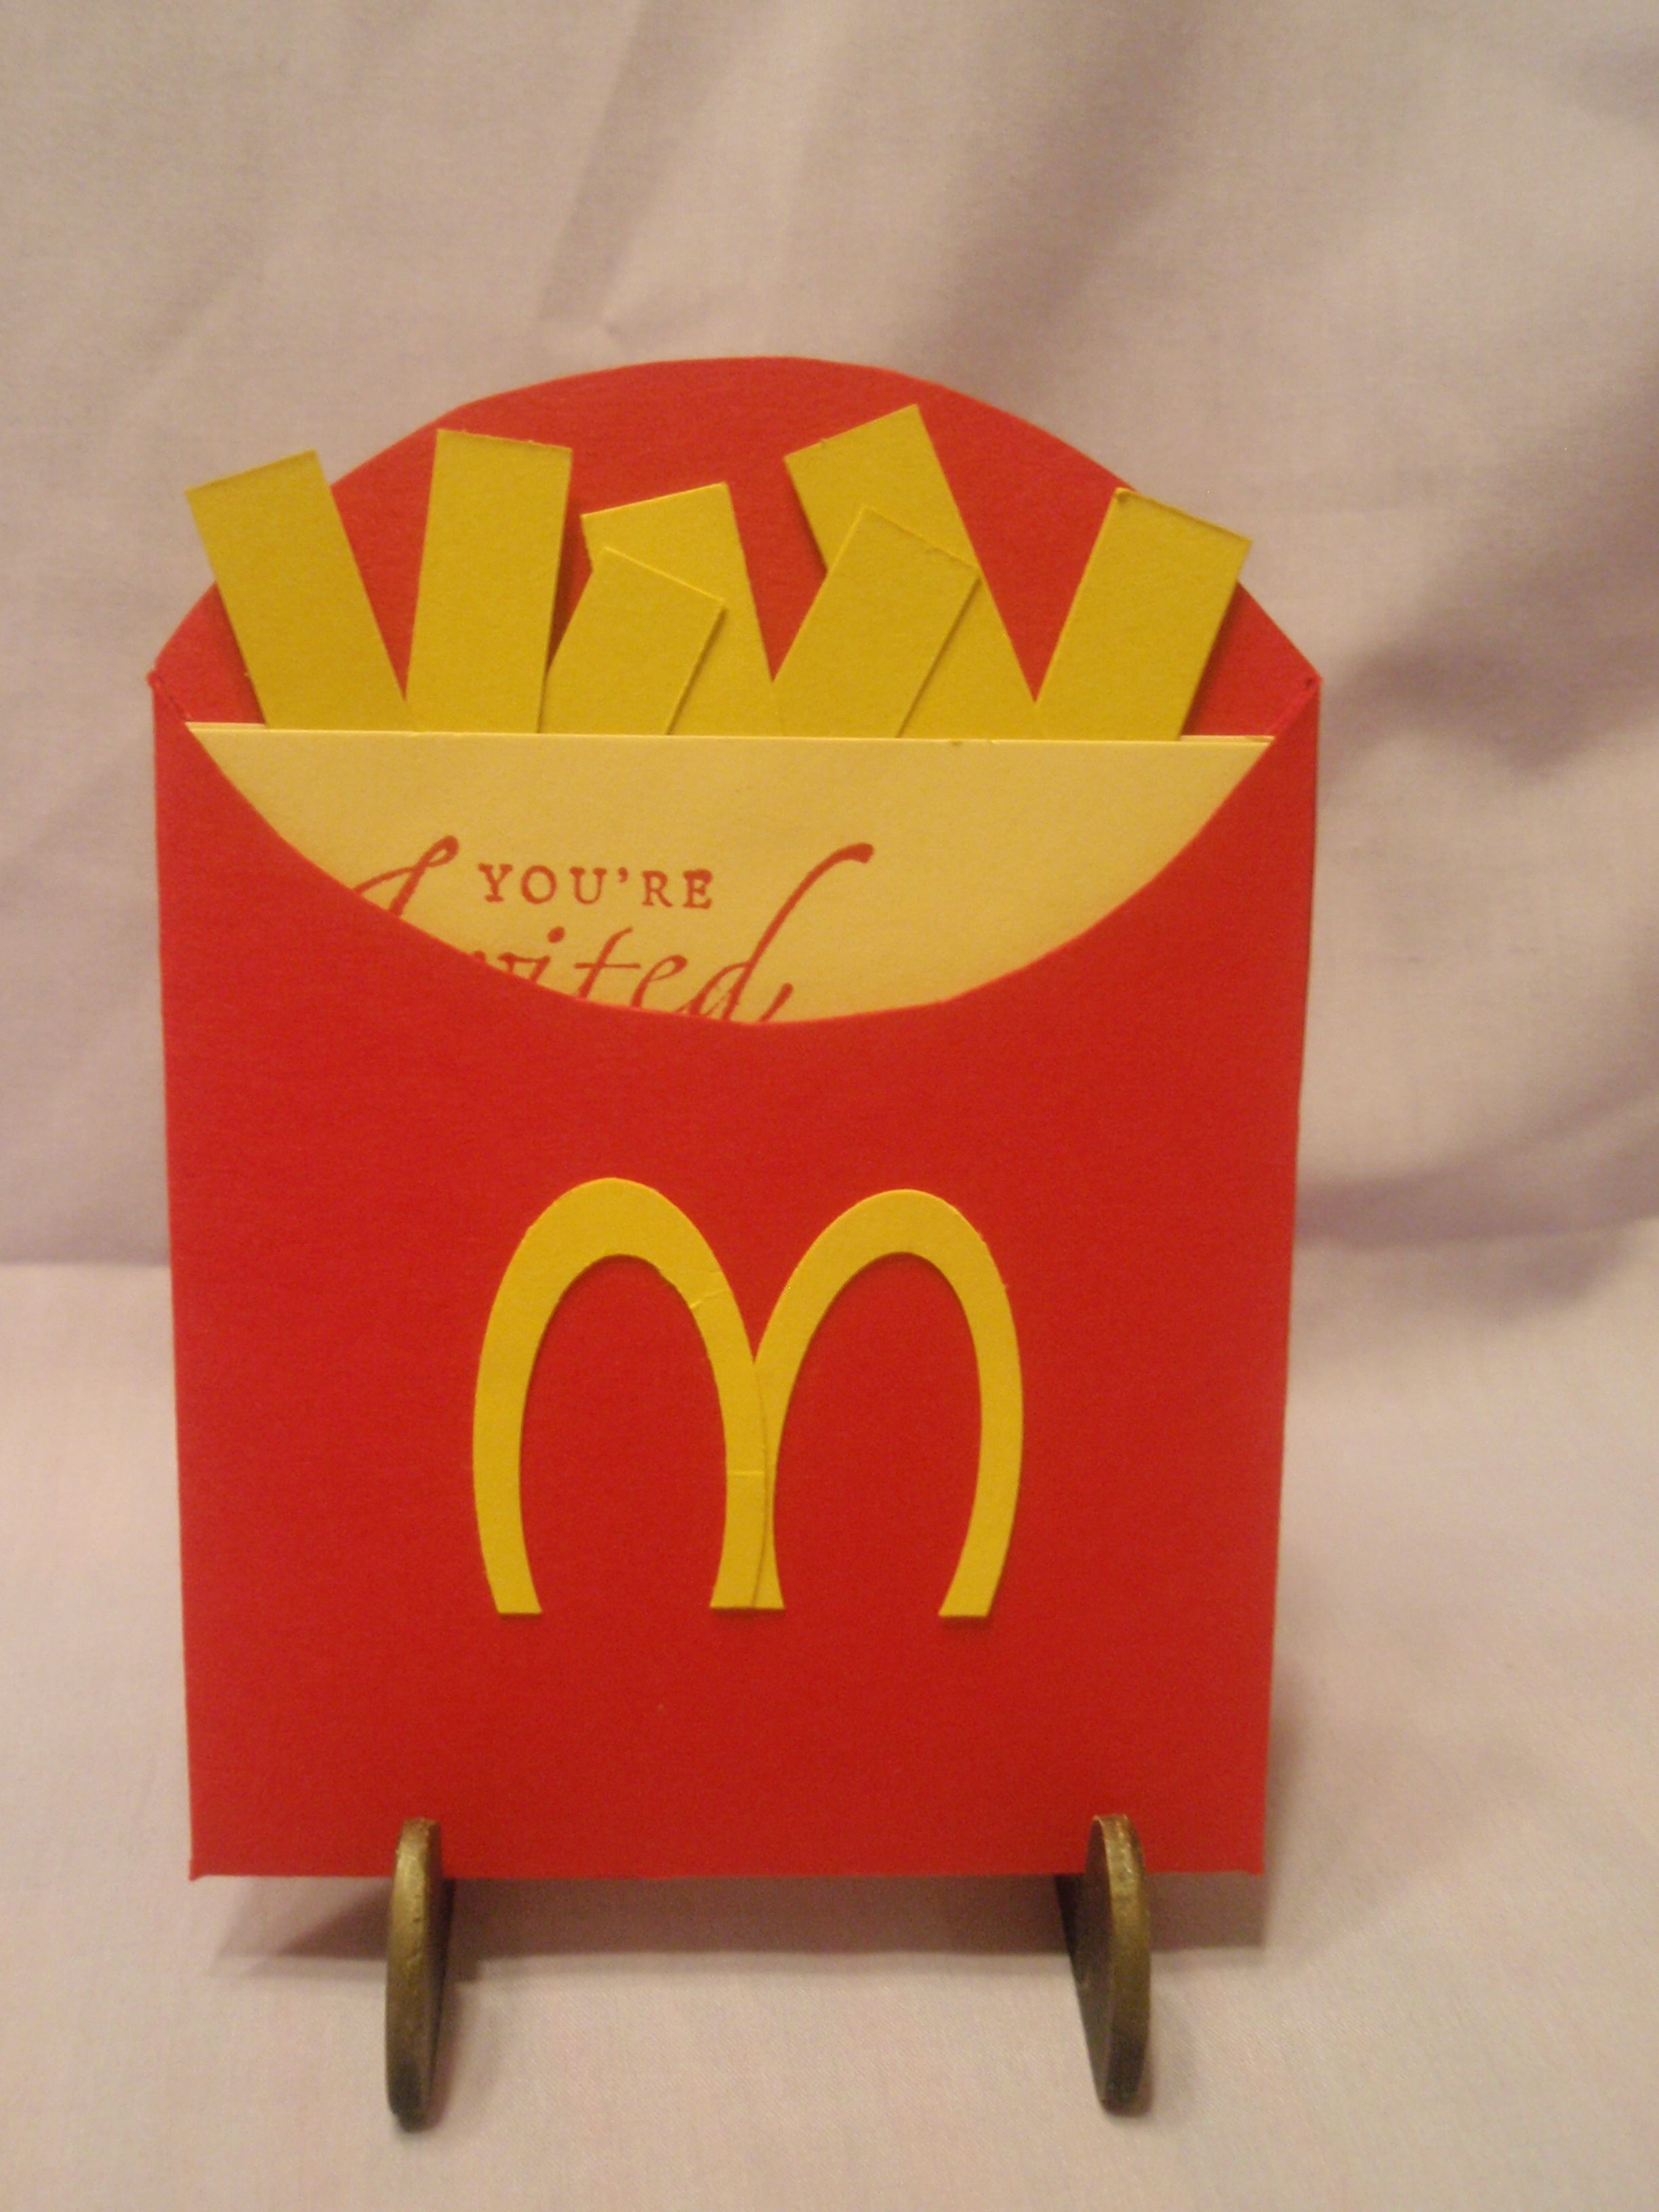 an invite I made for a Mcdonalds birthday party a friend was having